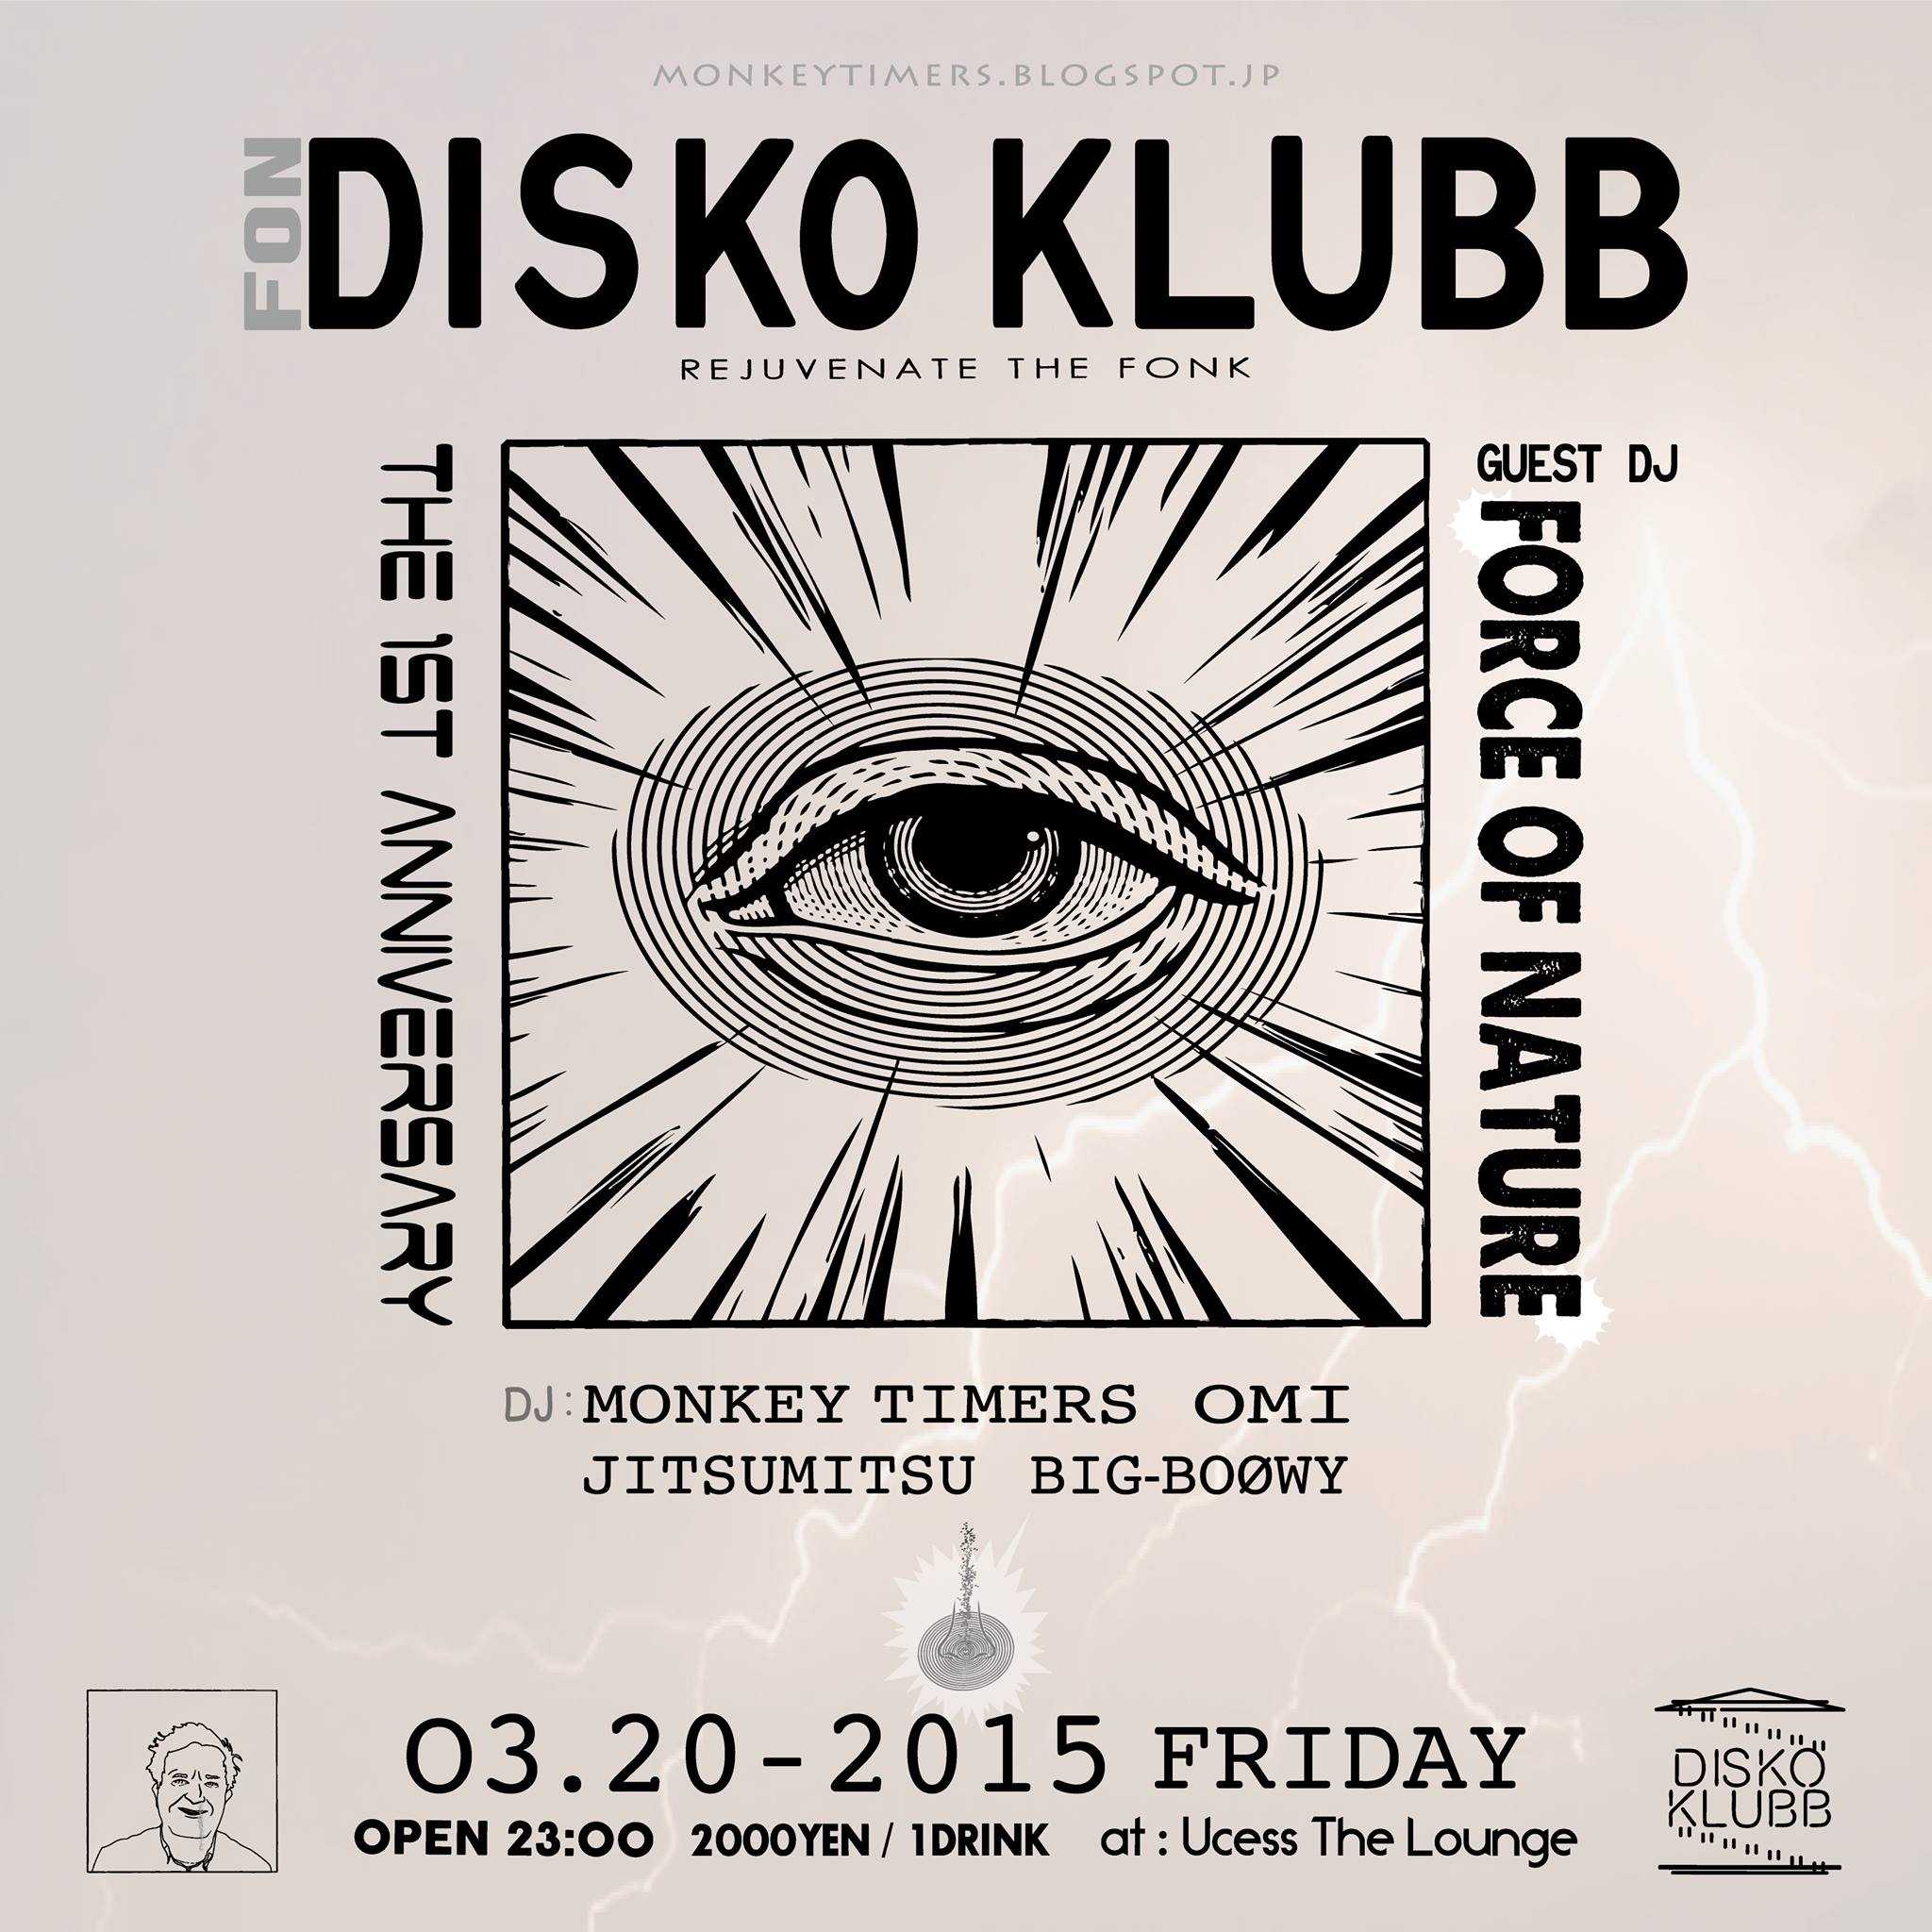 DISKO KLUBB ft FORCE OF NATURE